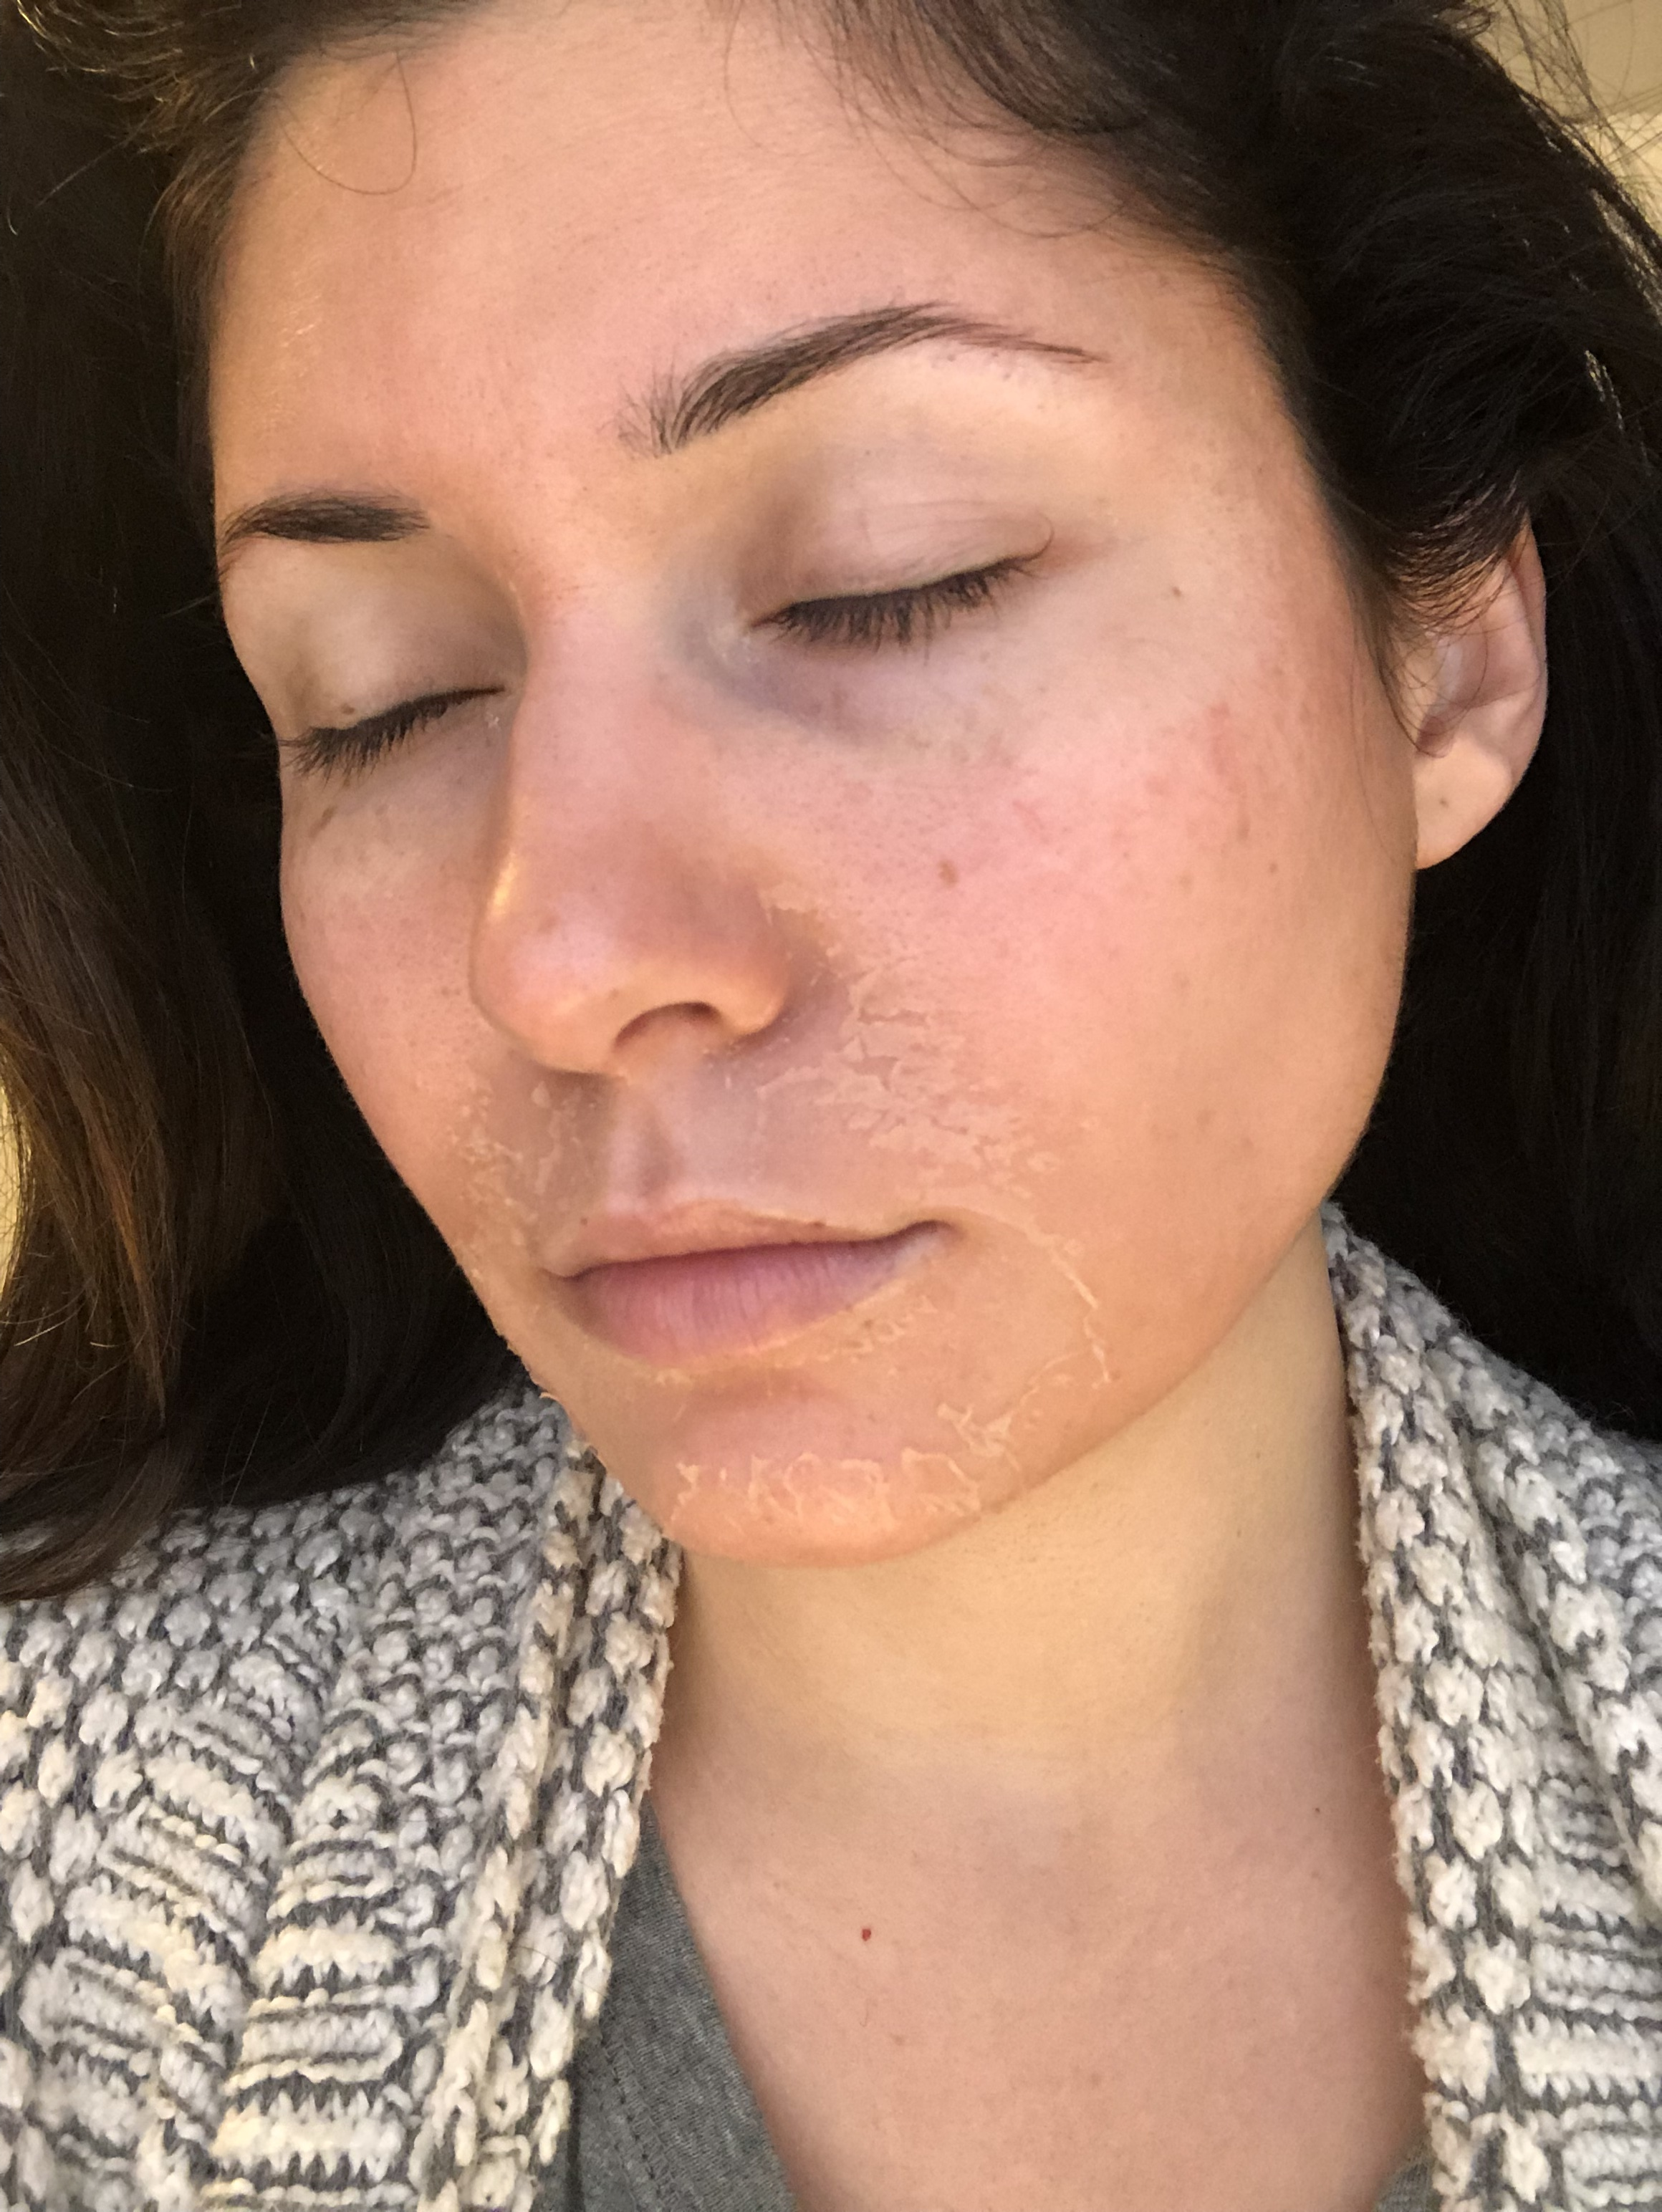 Day 4 - Mouth, nose and then cheek peeling!